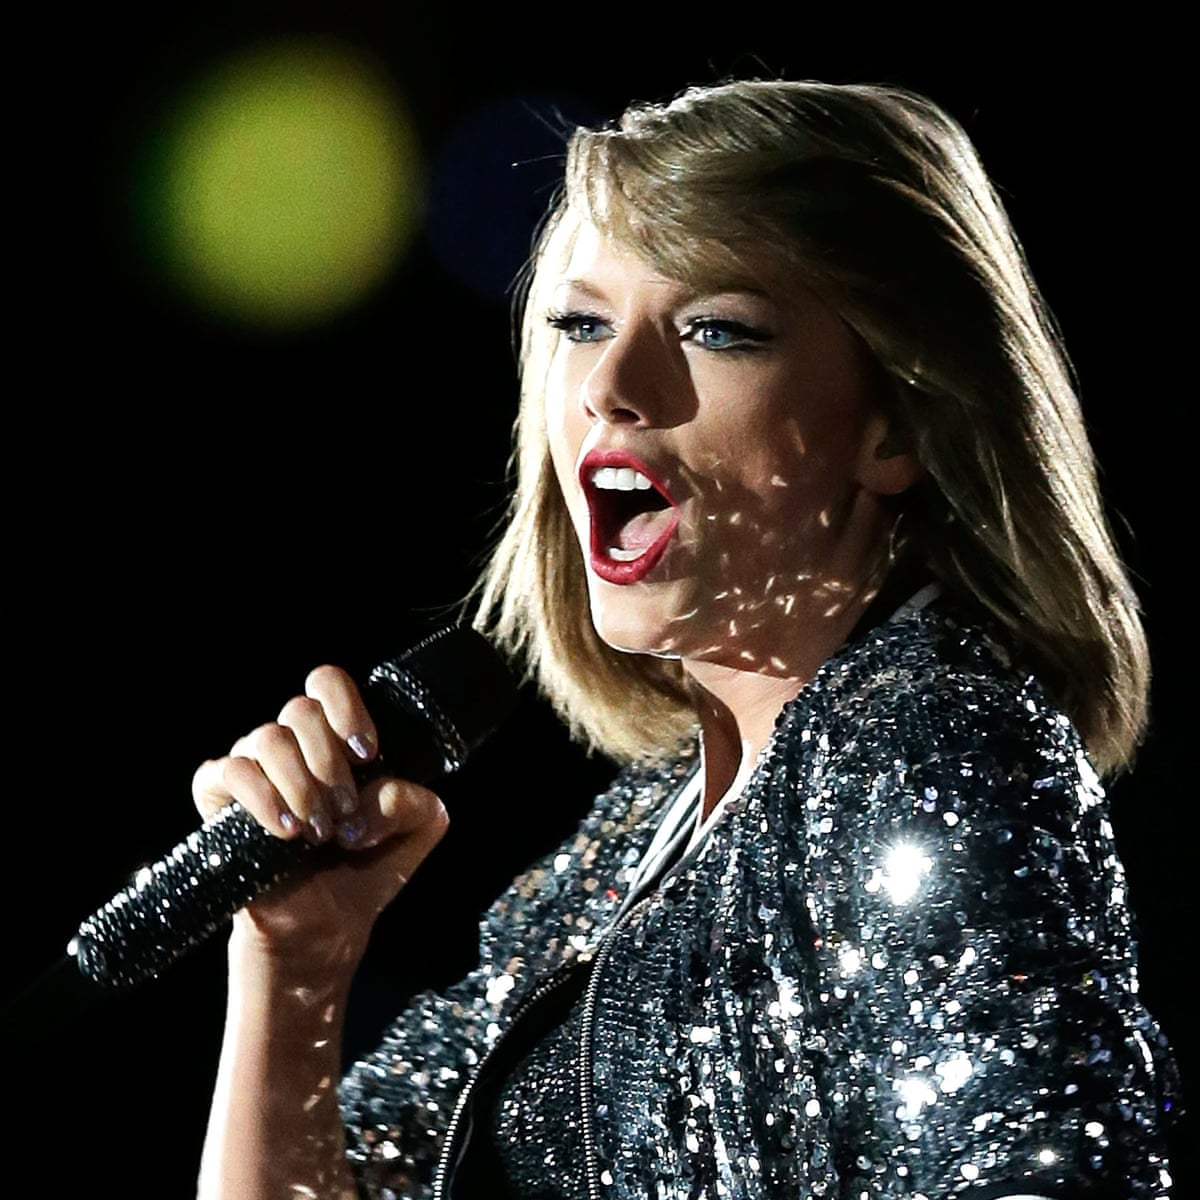 Taylor Swift Review Polished Perfection Remains Accessible As 1989 Tour Winds Down Taylor Swift The Guardian